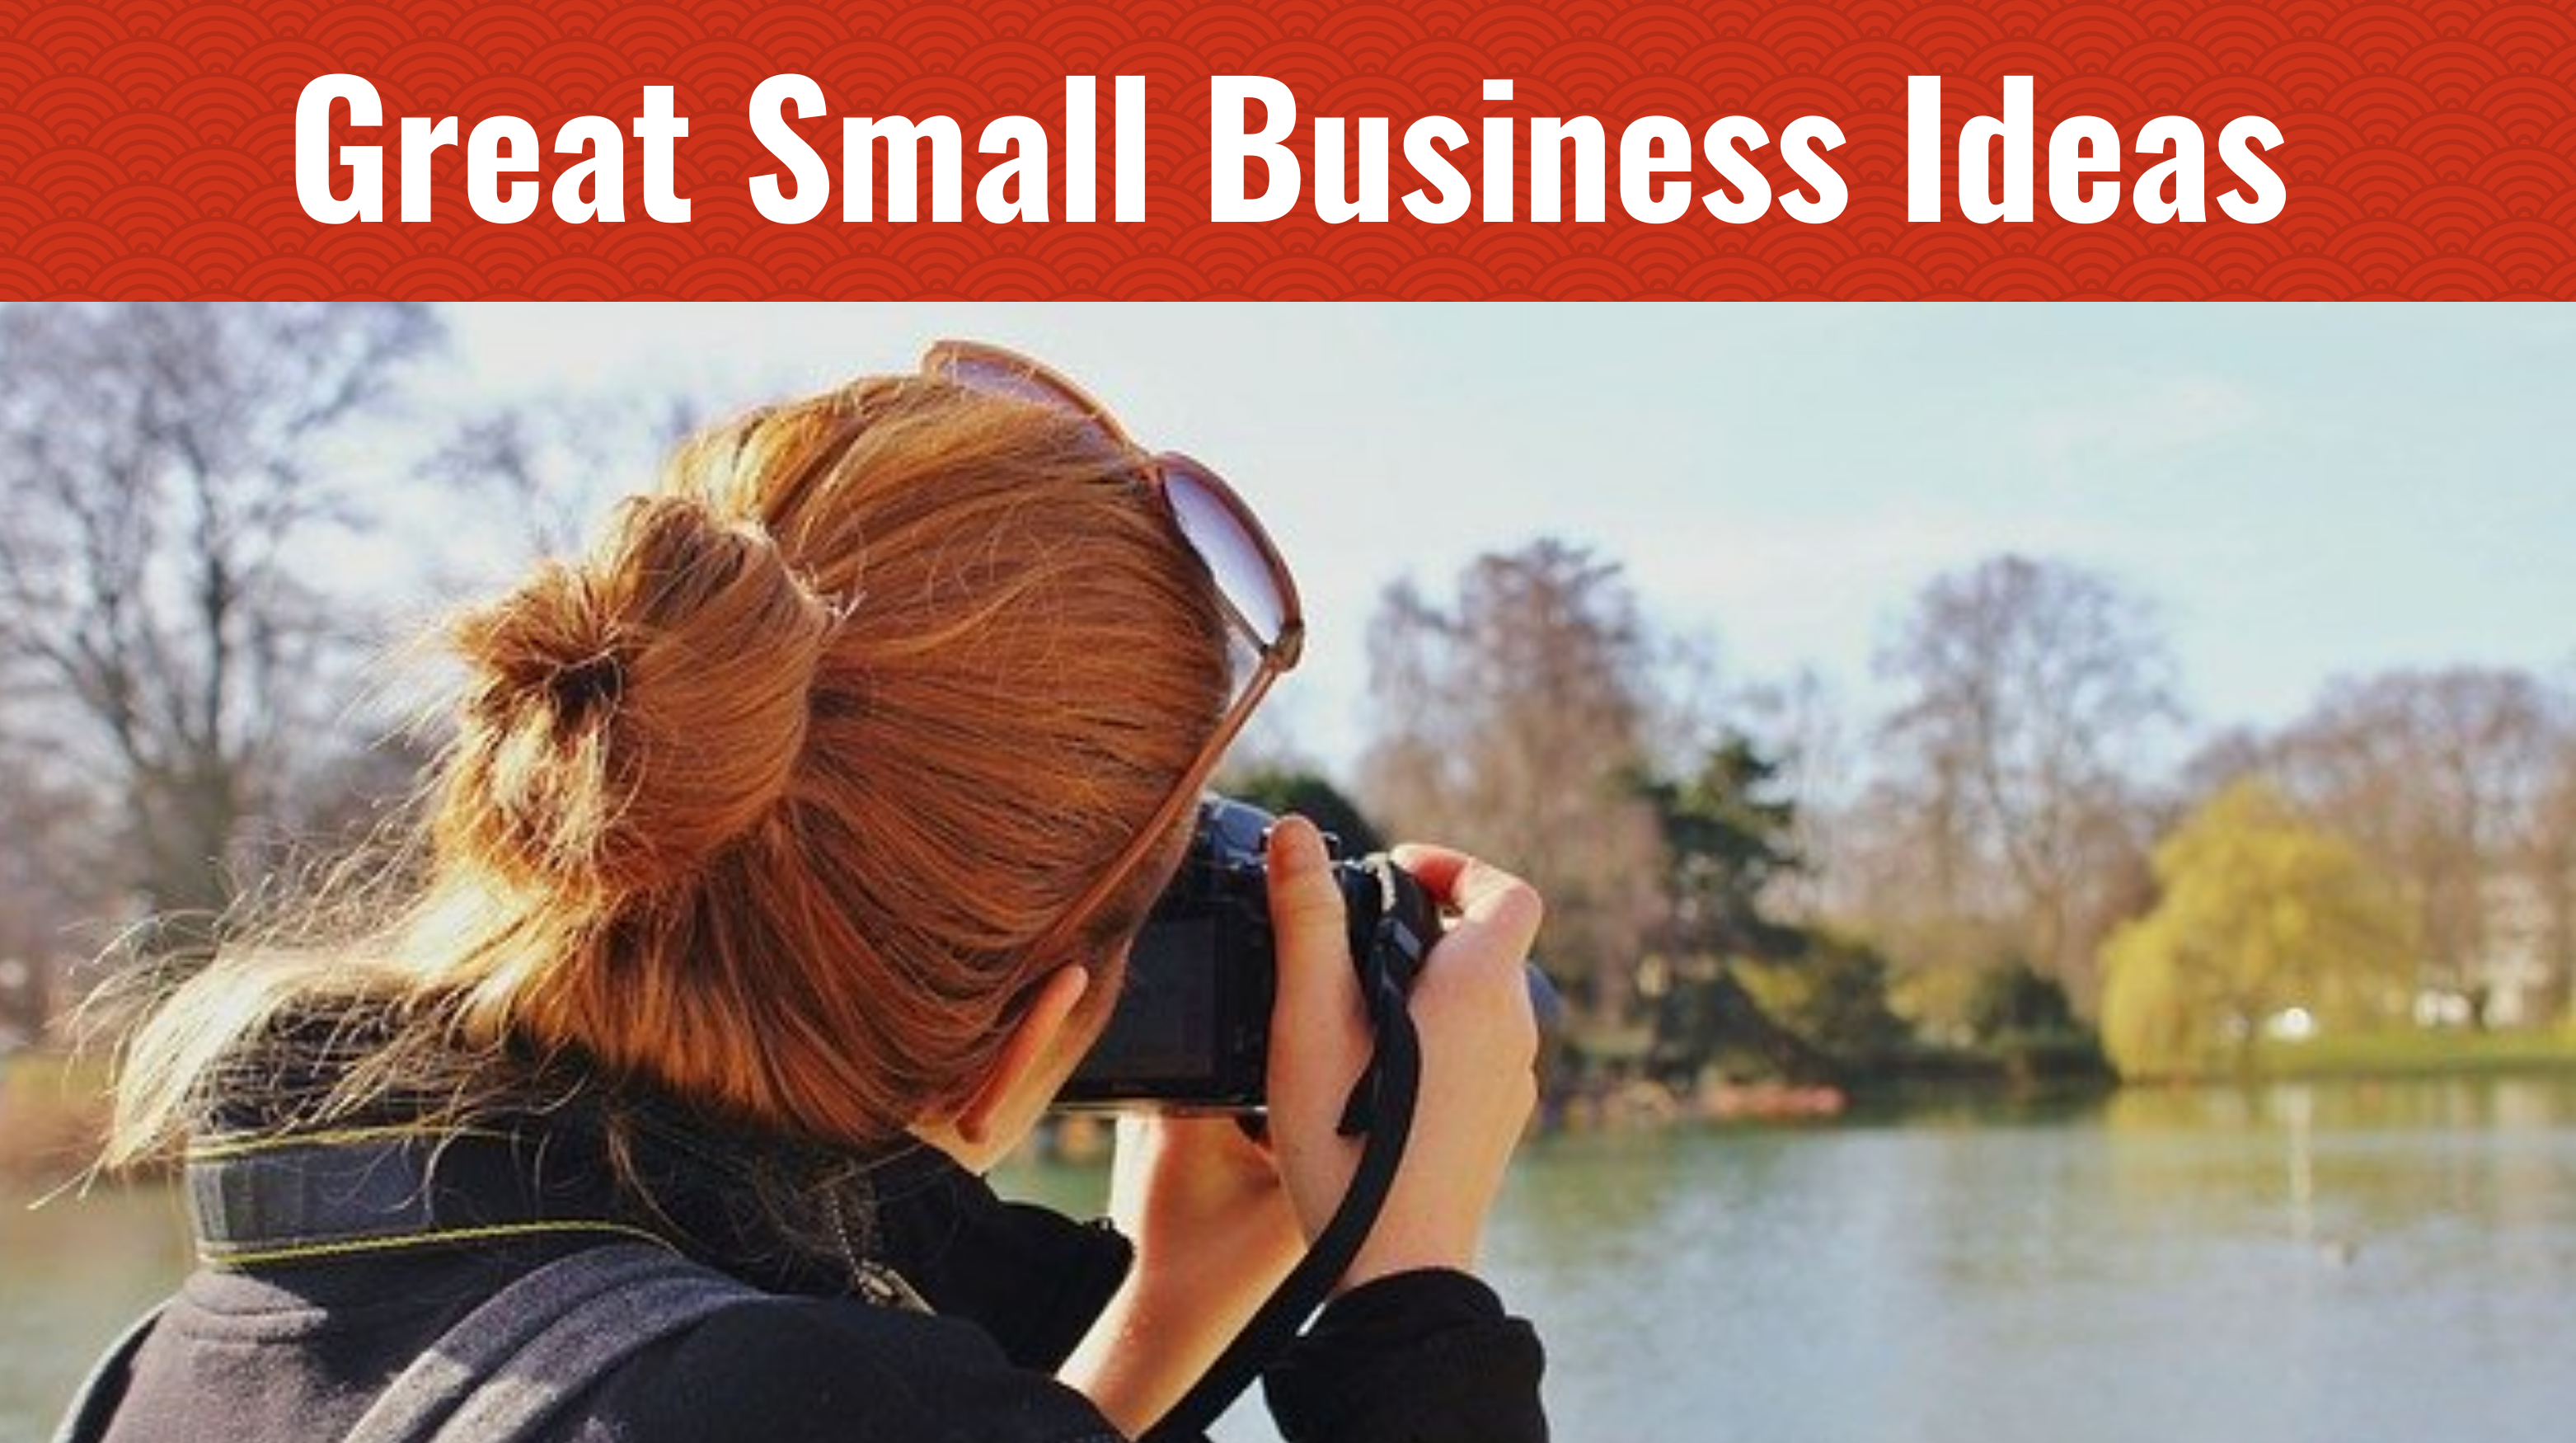 Small Business Ideas for 2020 - Find 51 of Them Here - Small Business Trends